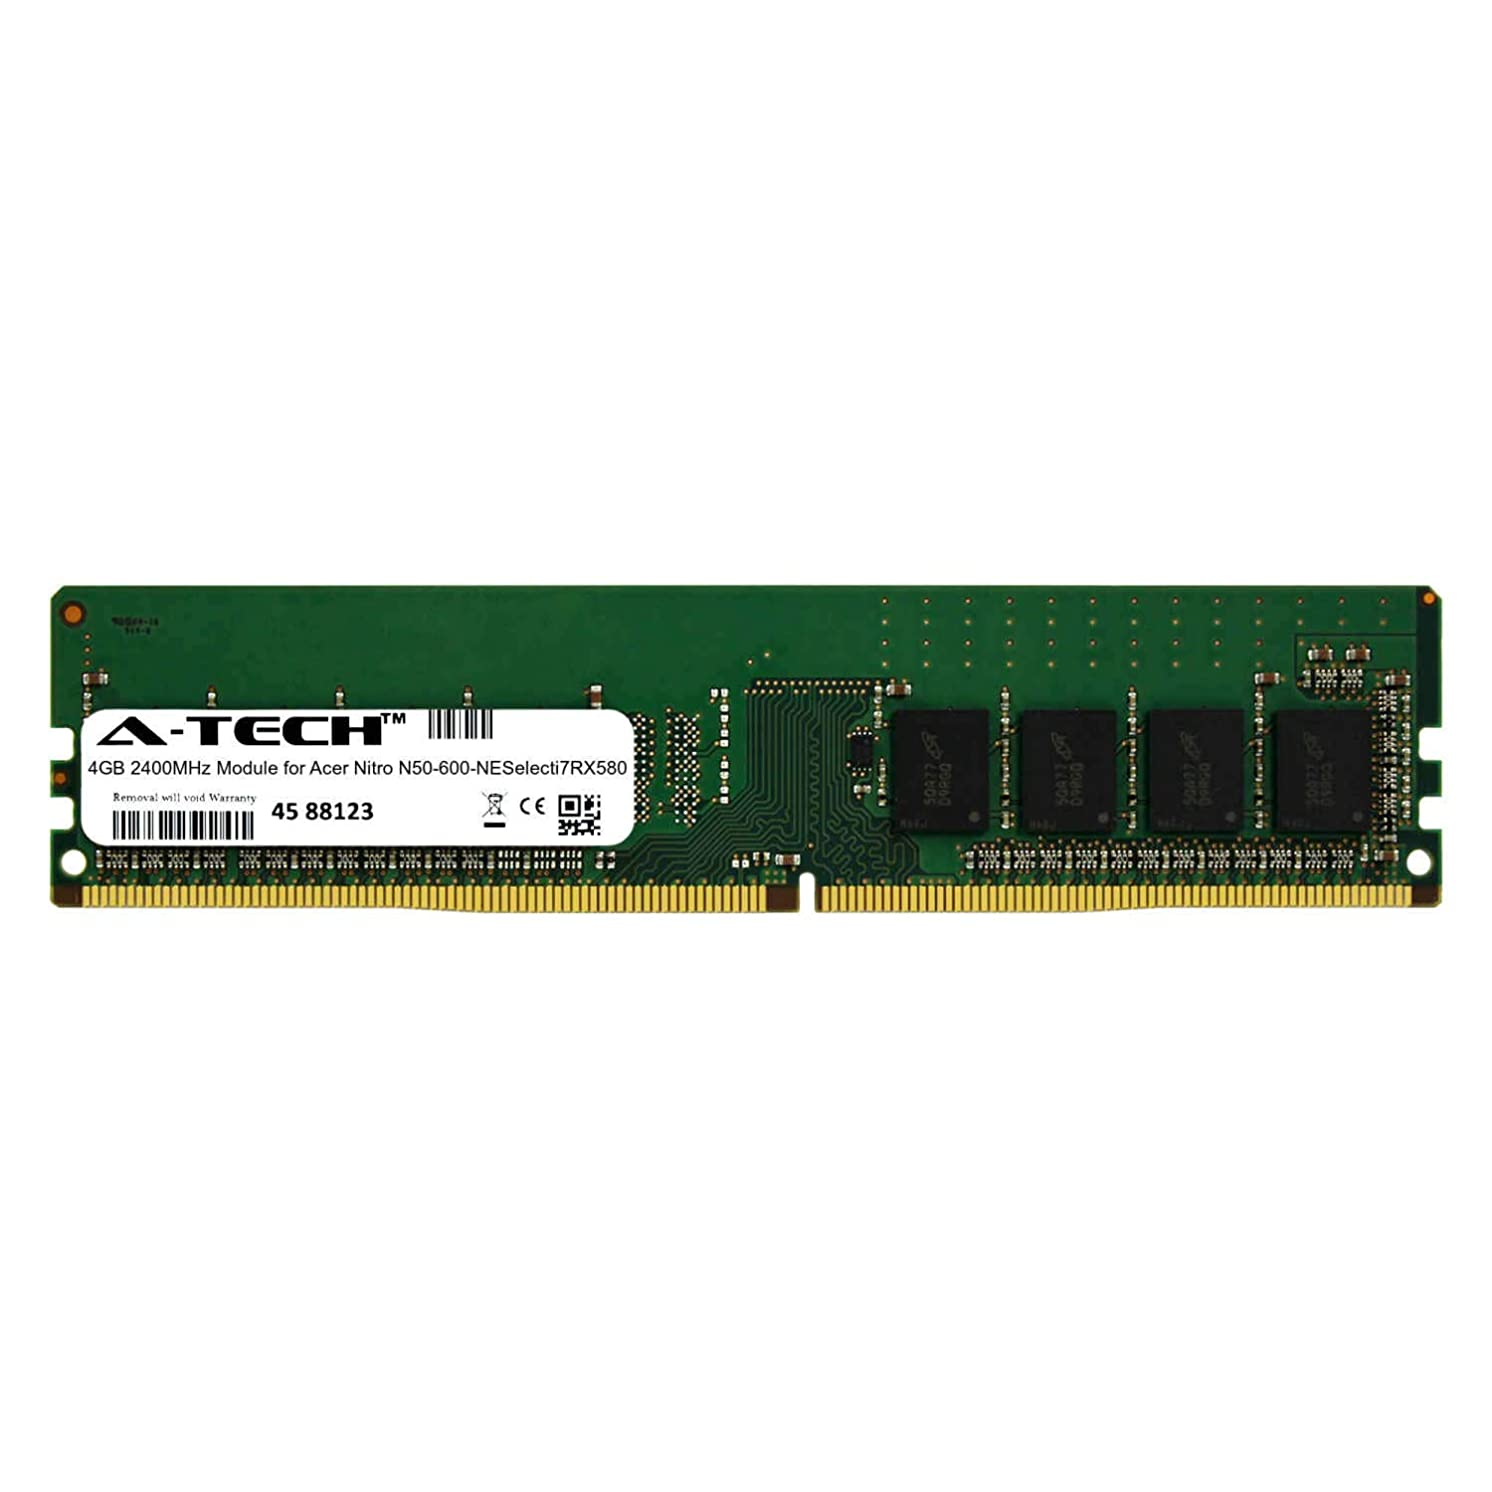 A-Tech 4GB Module for Acer Nitro N50-600-NESelecti7RX580 Desktop & Workstation Motherboard Compatible DDR4 2400Mhz Memory Ram (ATMS279658A25815X1)